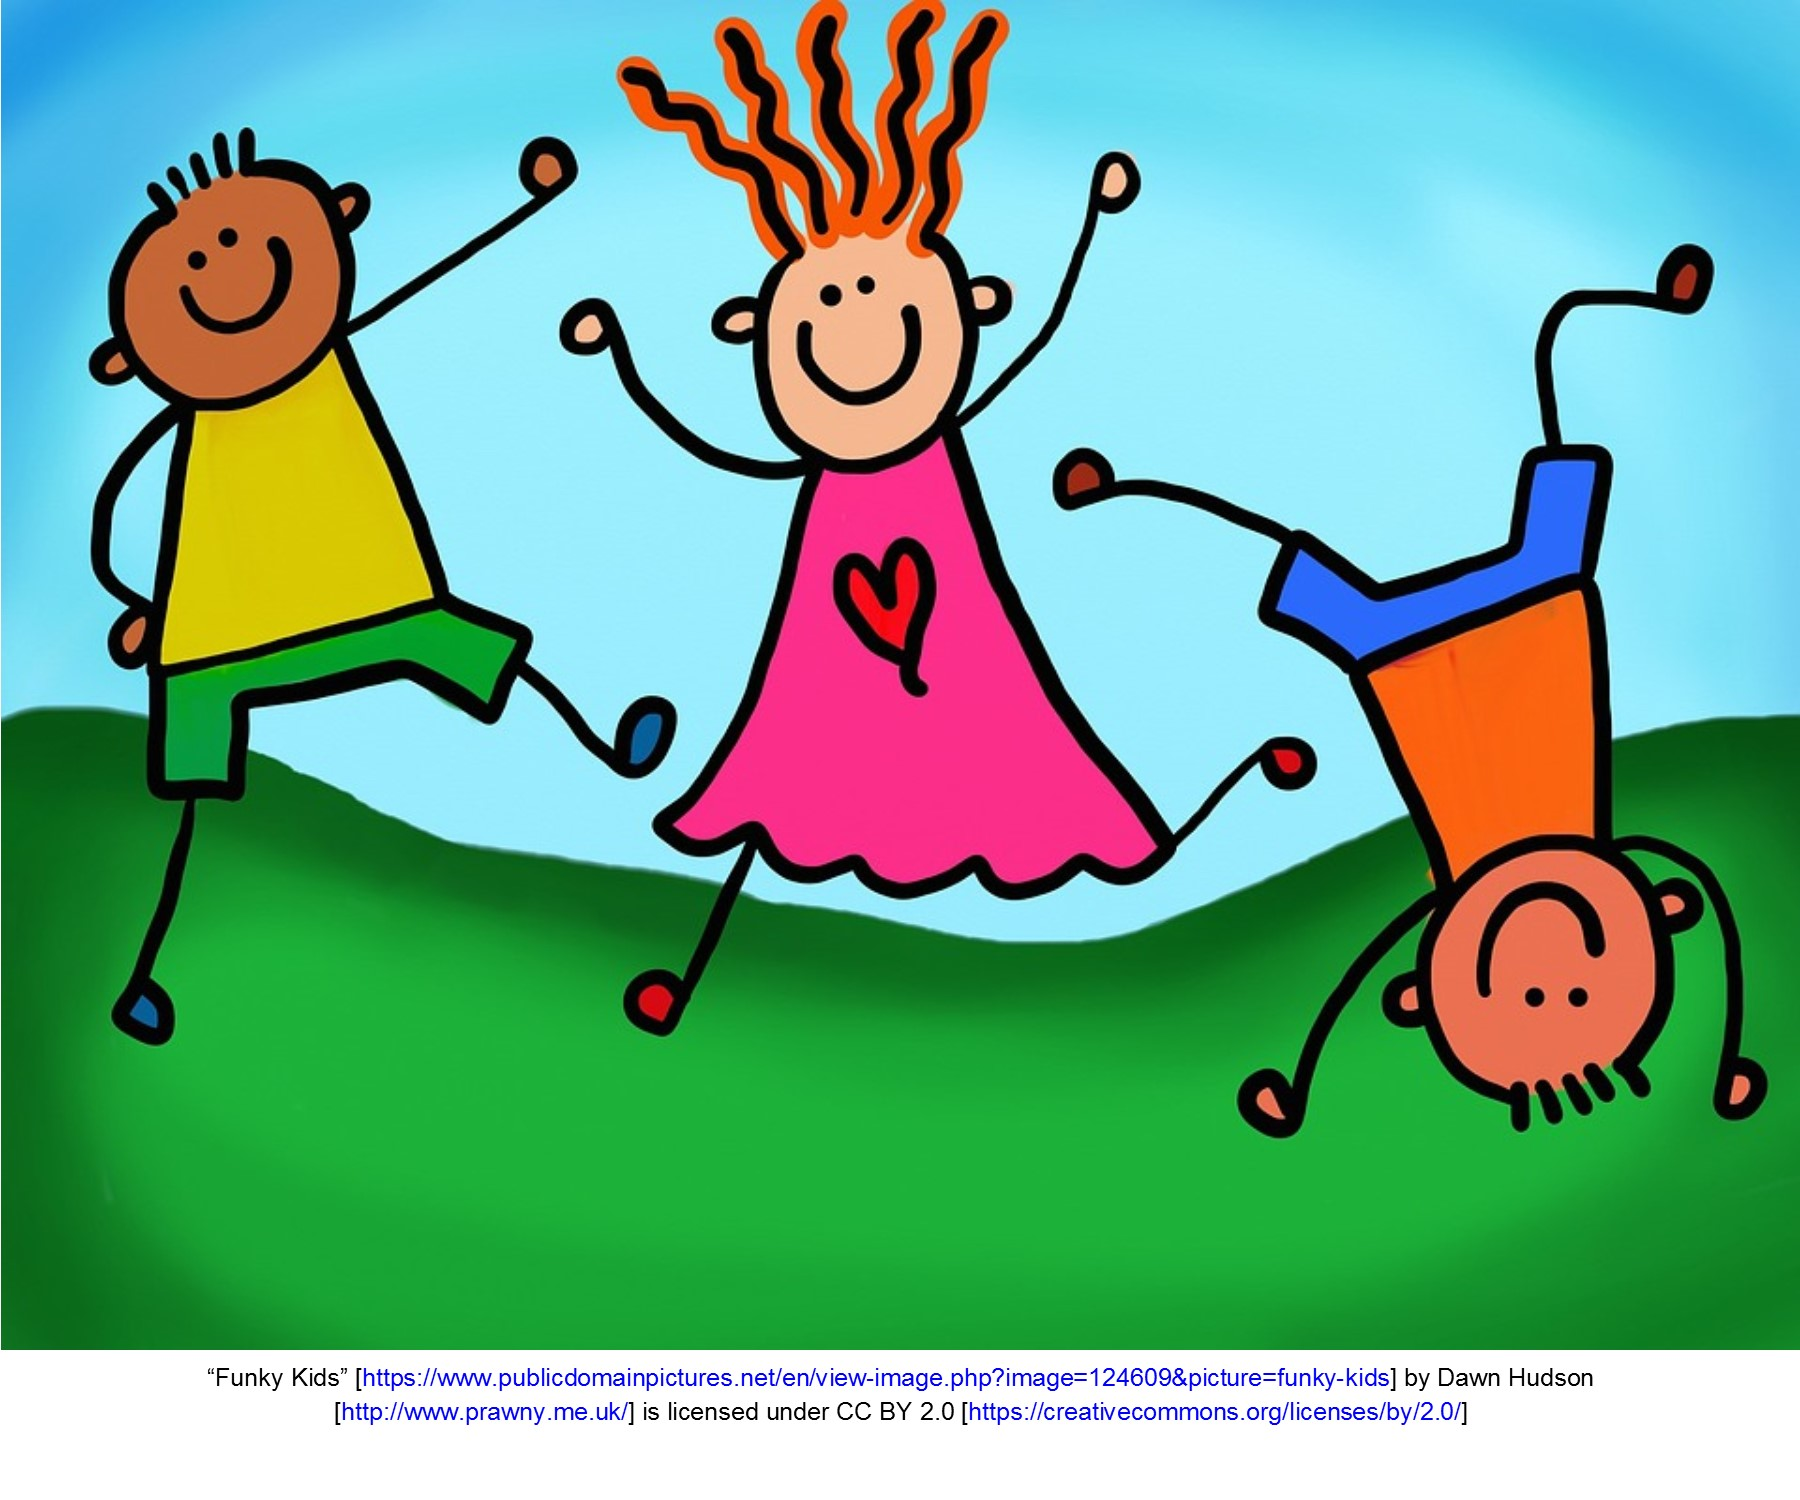 Animated image of children playing